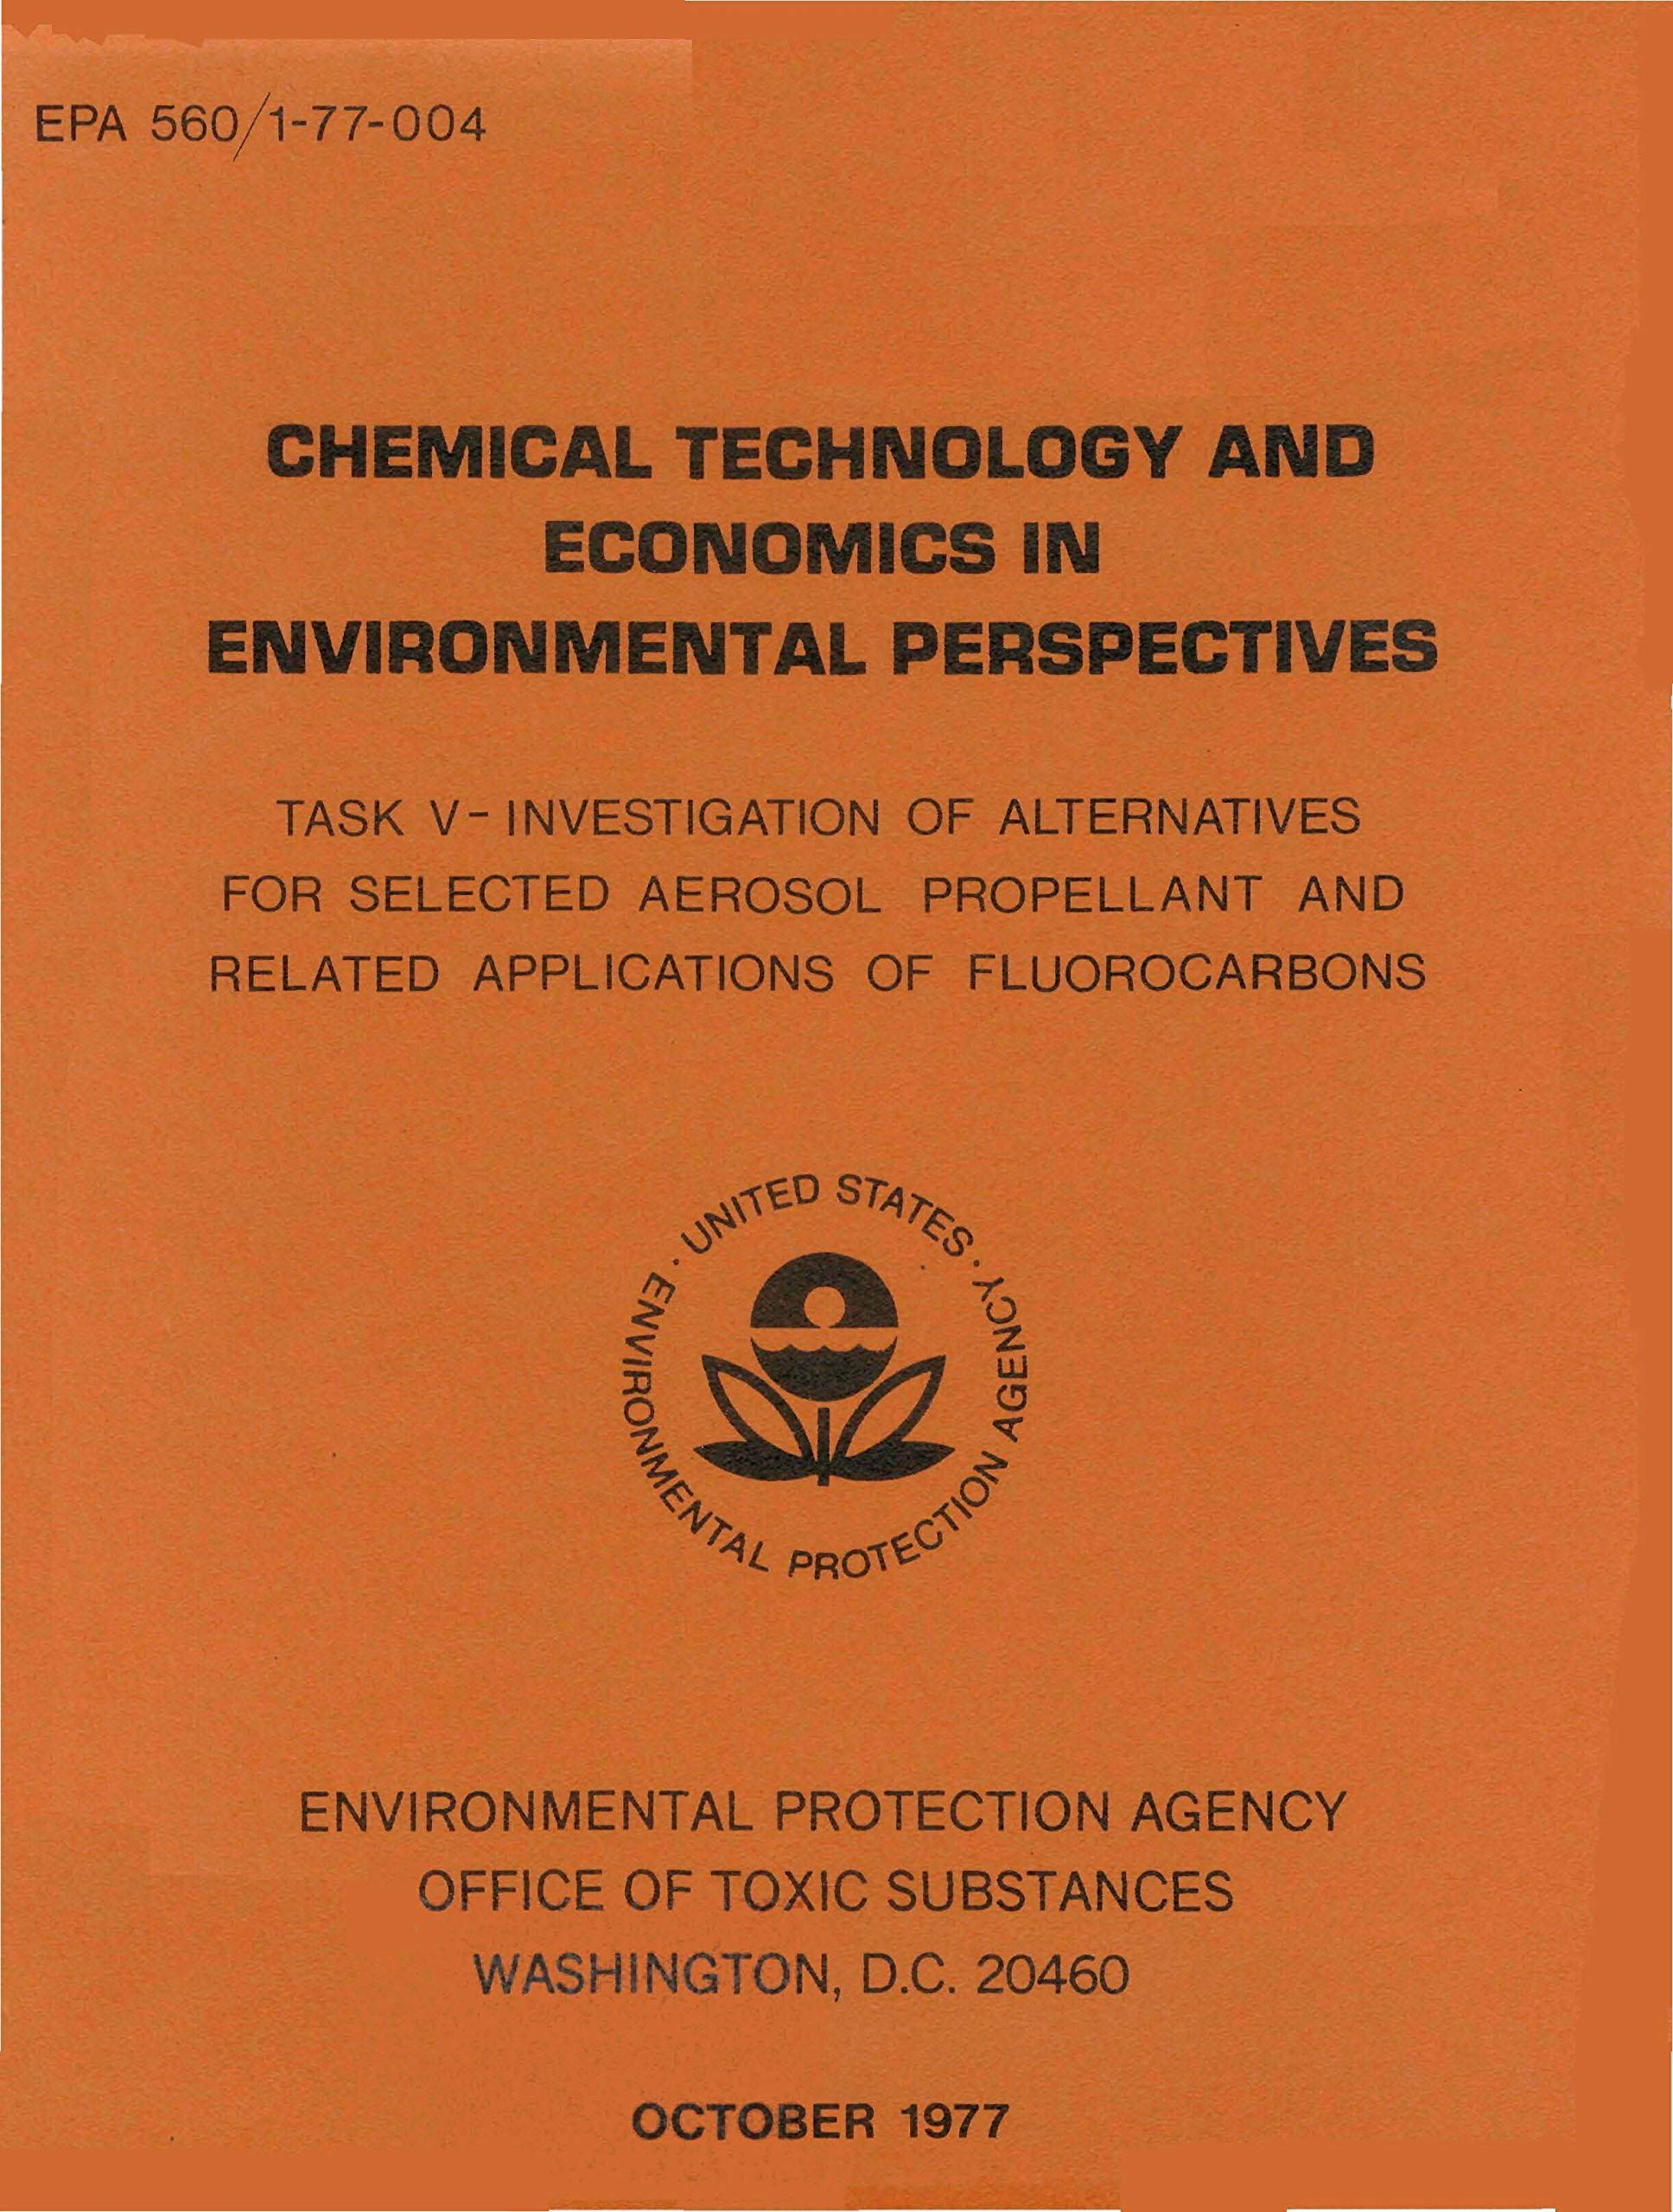 Chemical Technology and Economics in Environmental Perspectives: Task V - Investigation of Alternatives for Selected Aerosol Propellant and Related Applications of Fluorocarbons